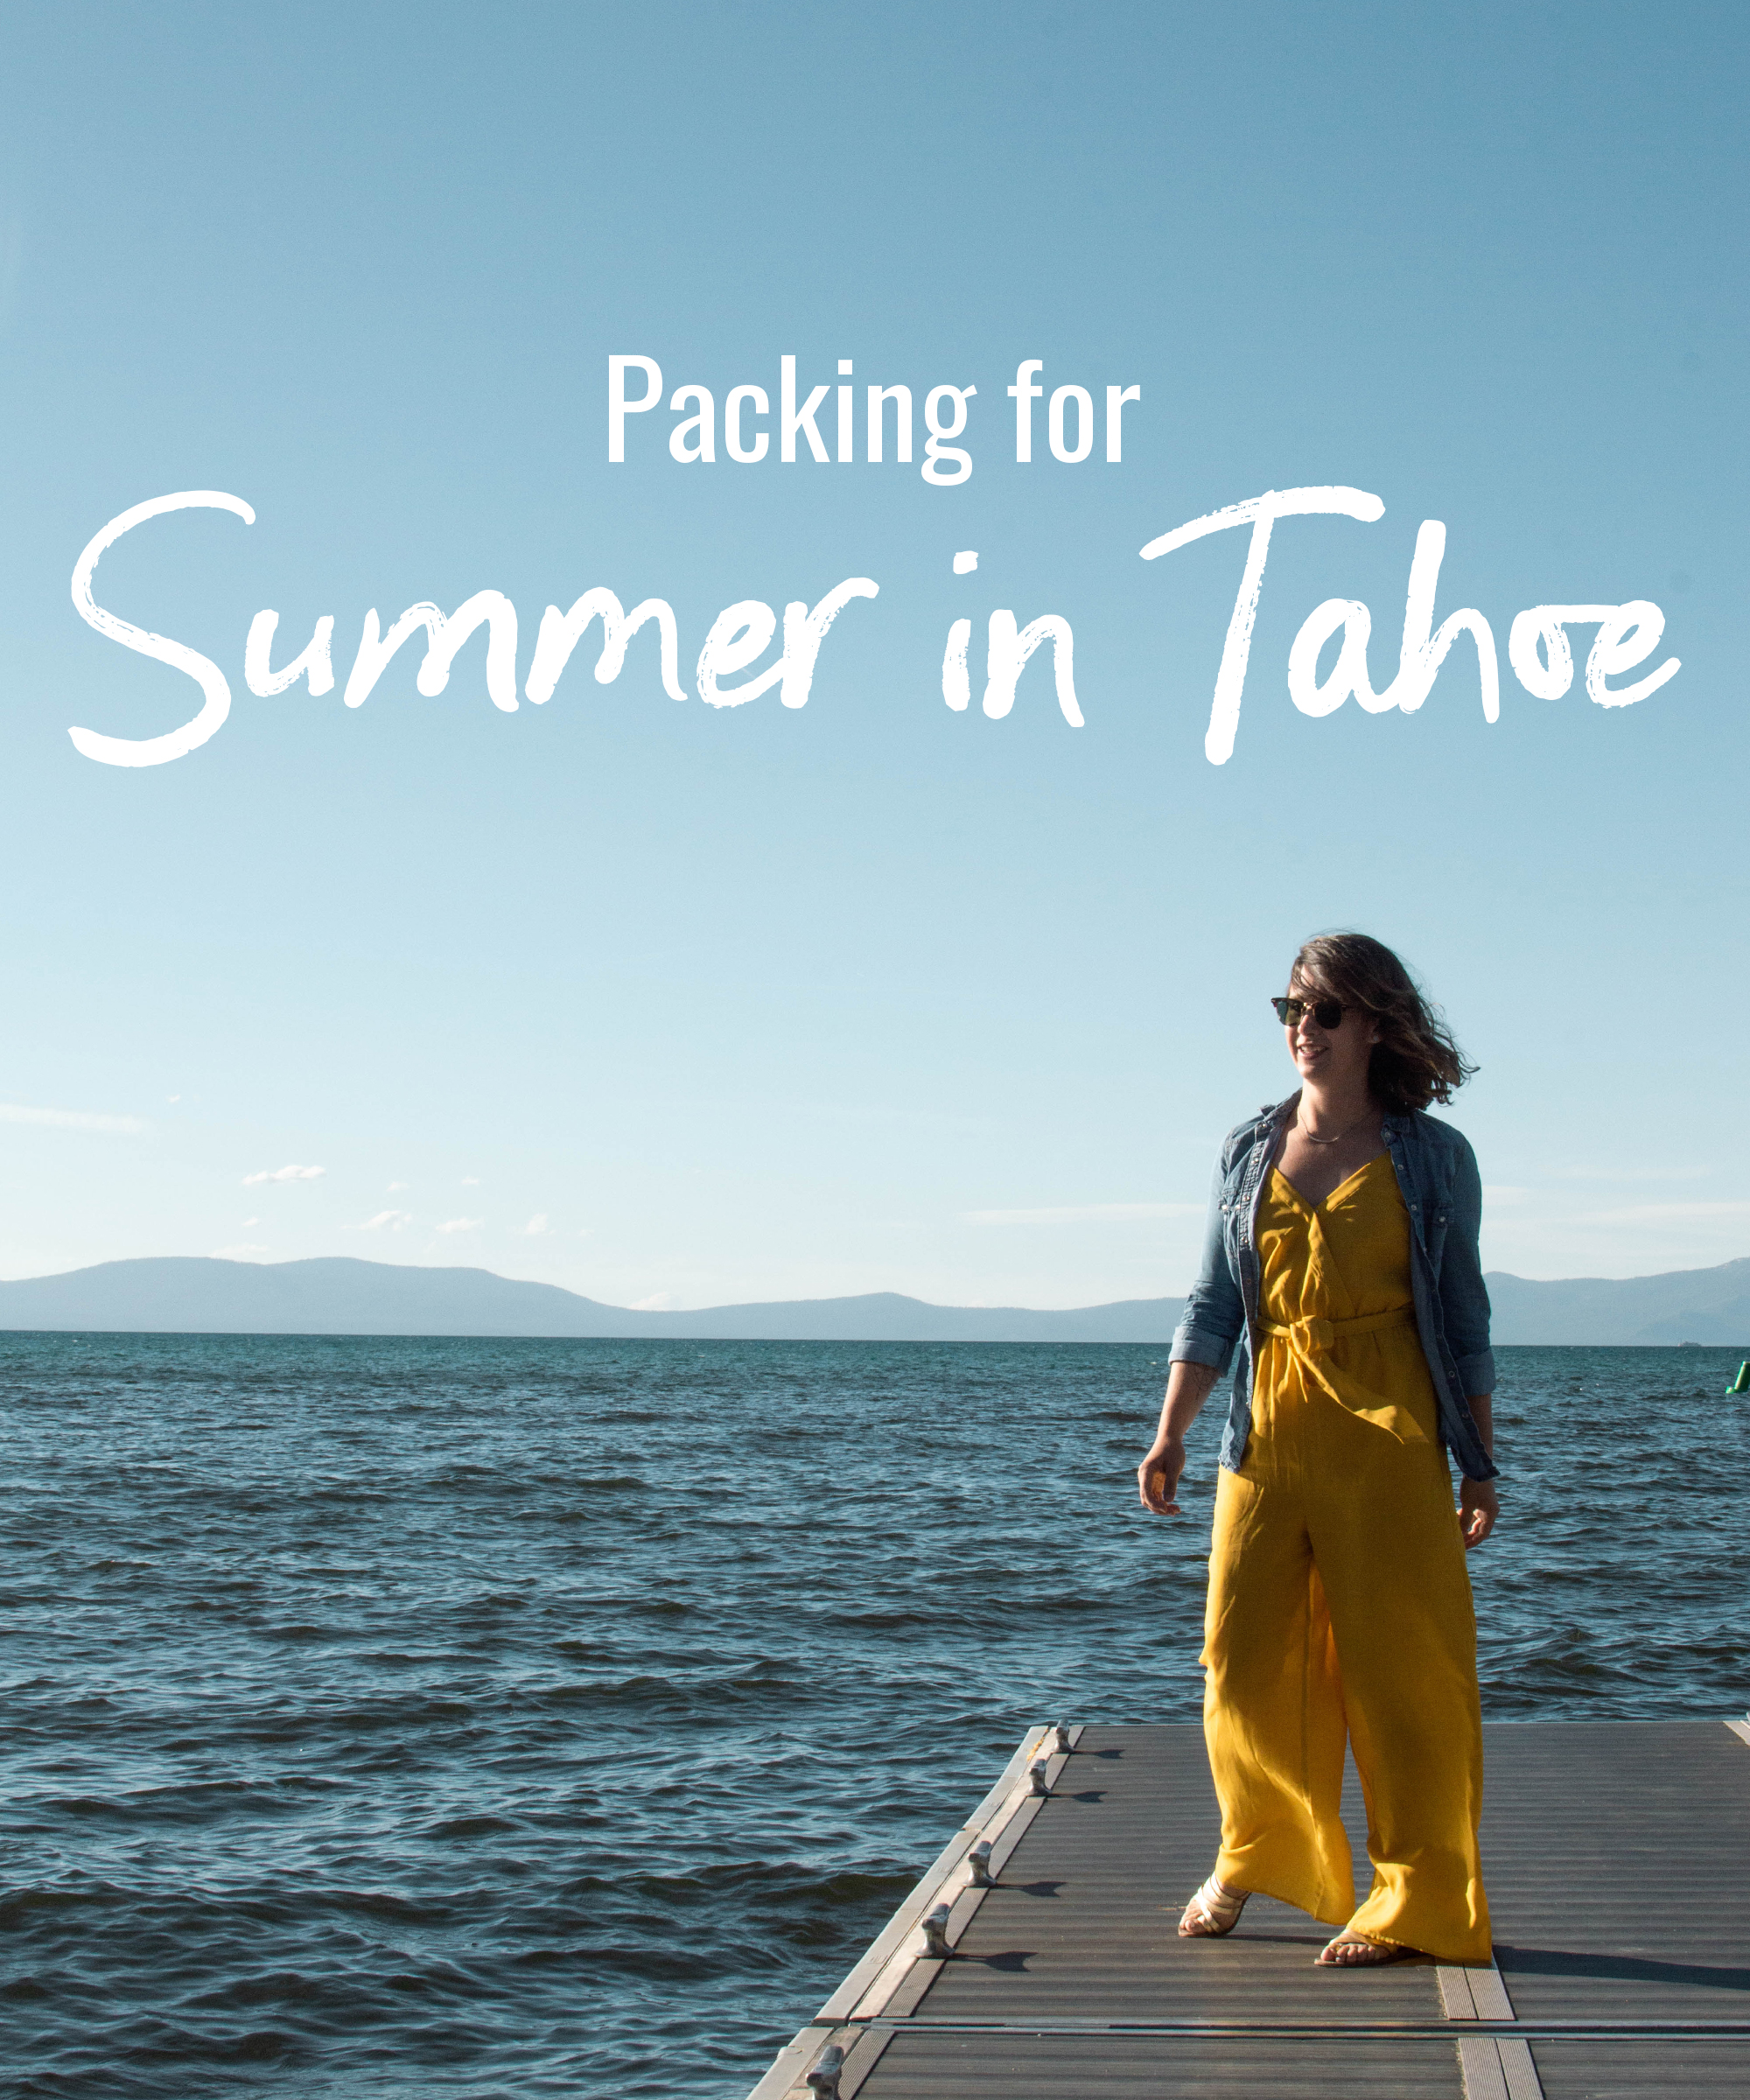 Packing for summer in Tahoe